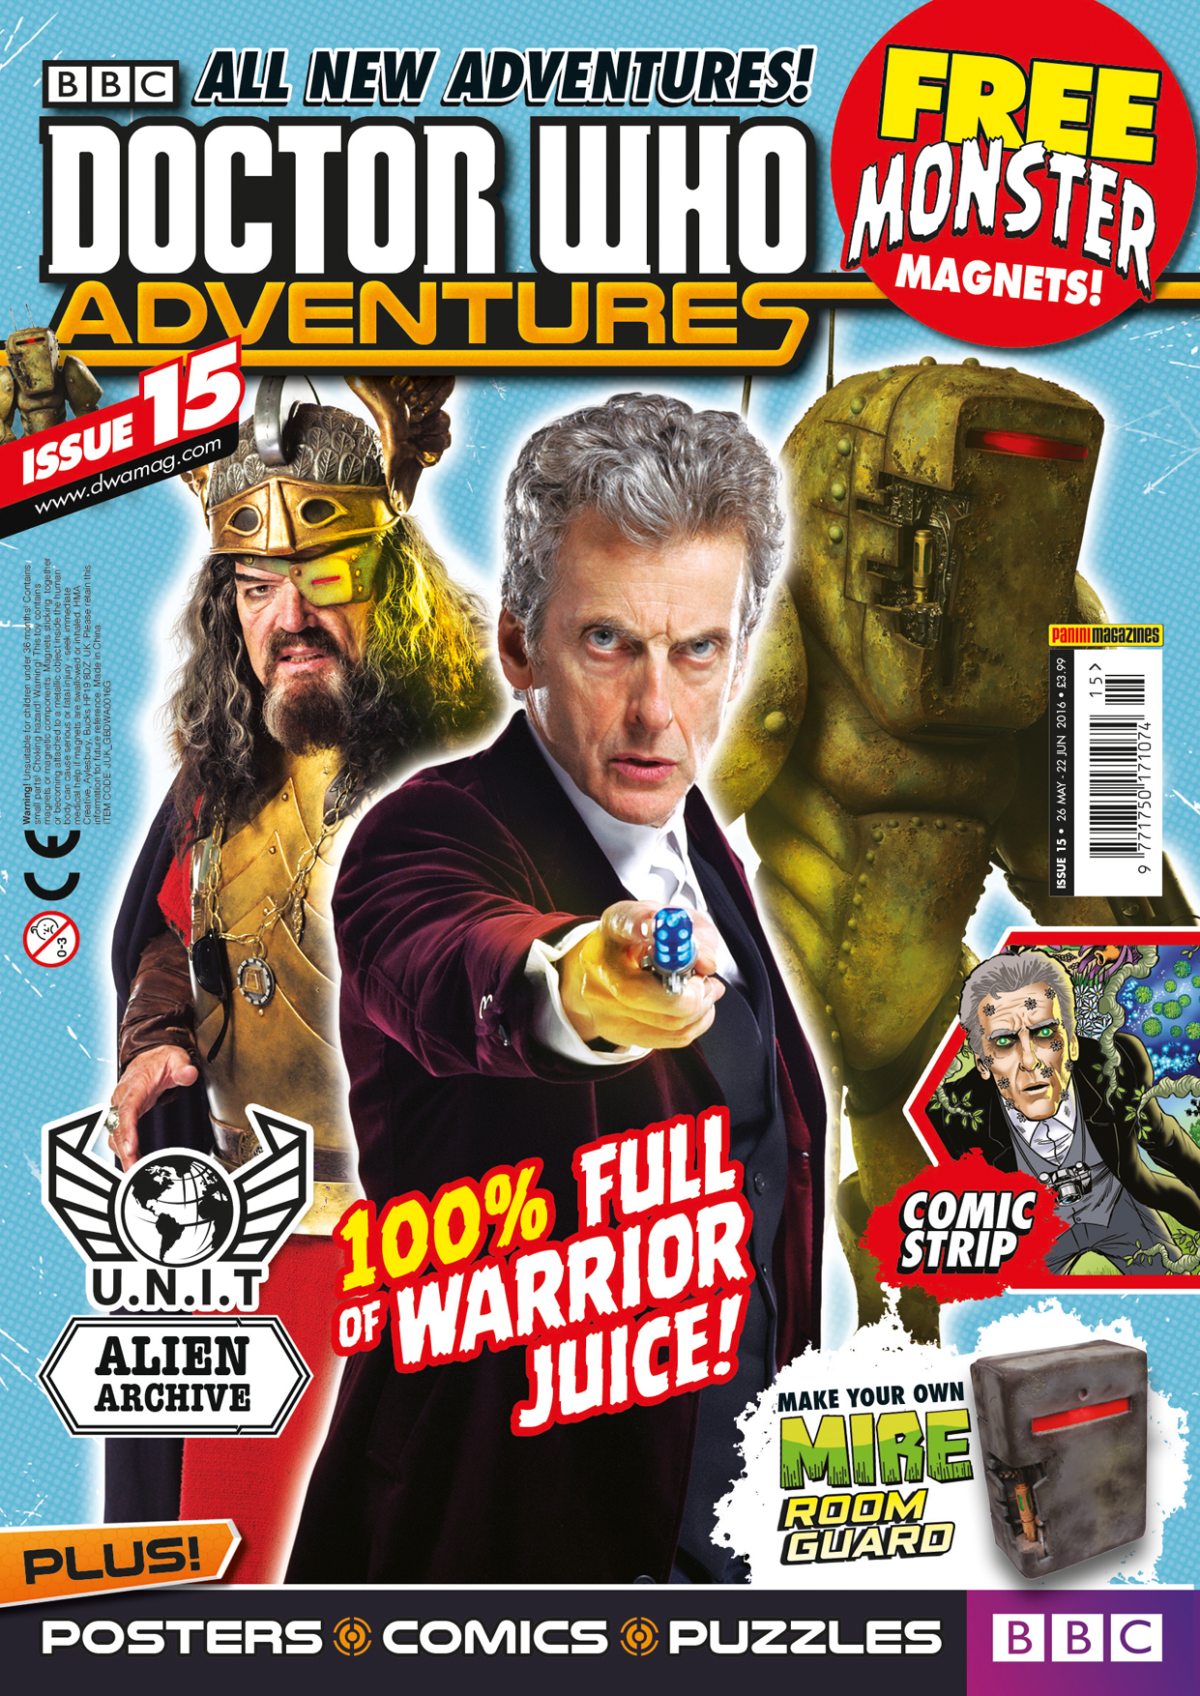 Doctor Who Adventures Issue 15